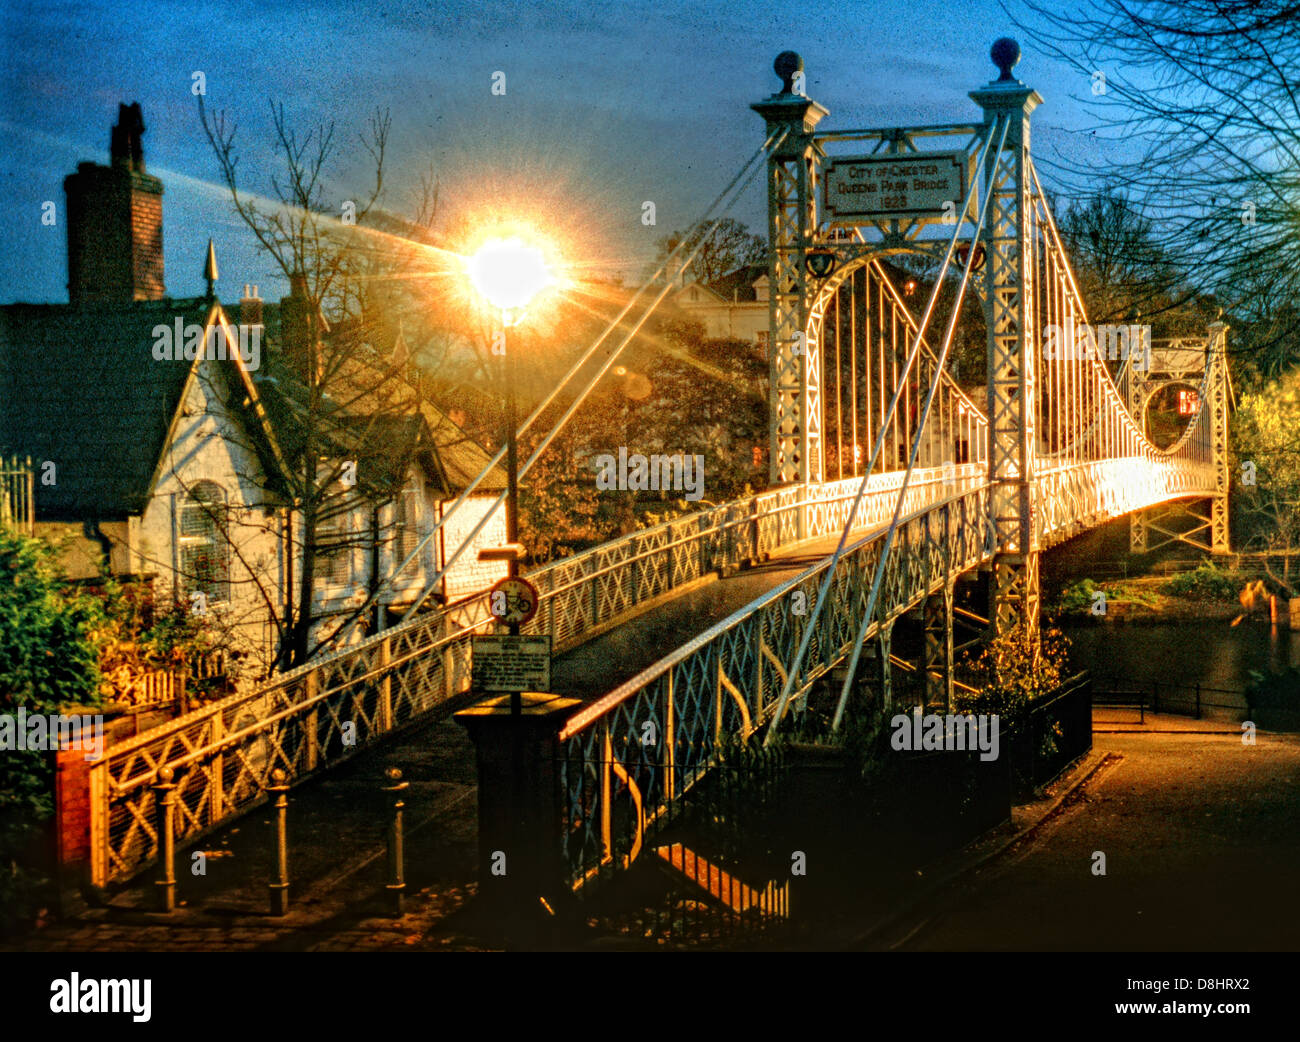 Suspension Queens Park footbridge river Dee Chester City at dusk, North West England, UK - Stock Image